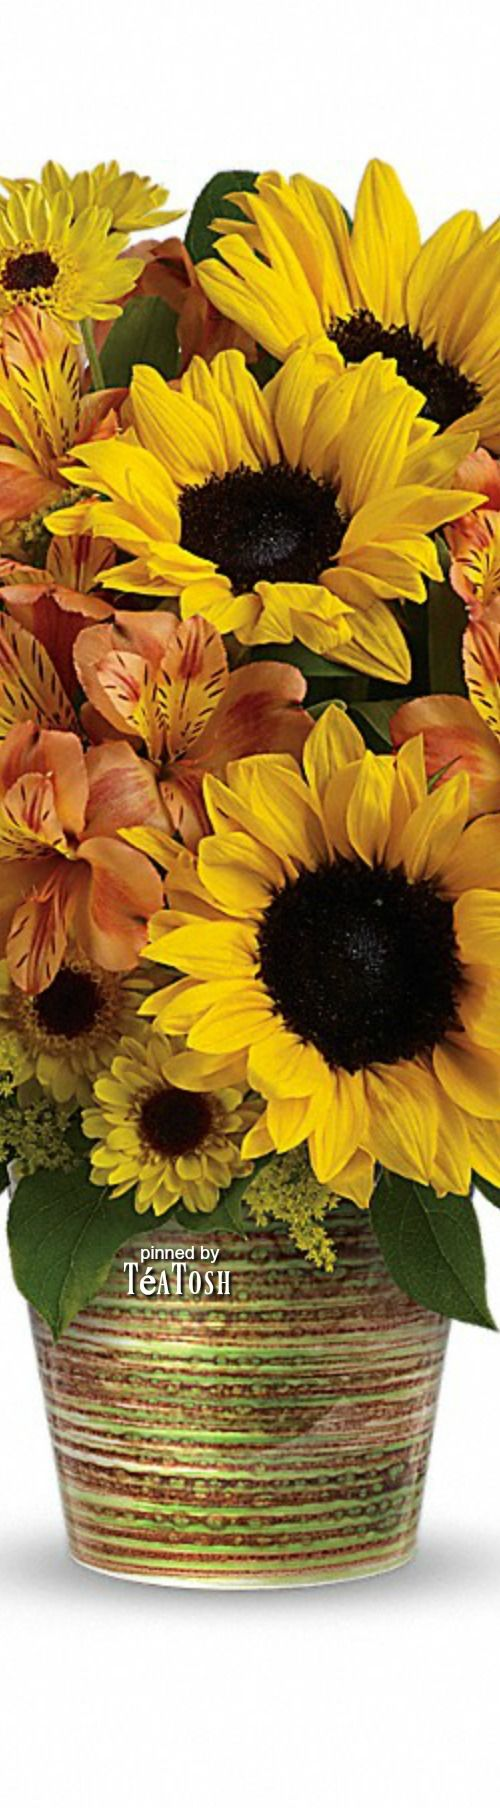 ❈Téa Tosh❈ Grand Sunshine Bouquet